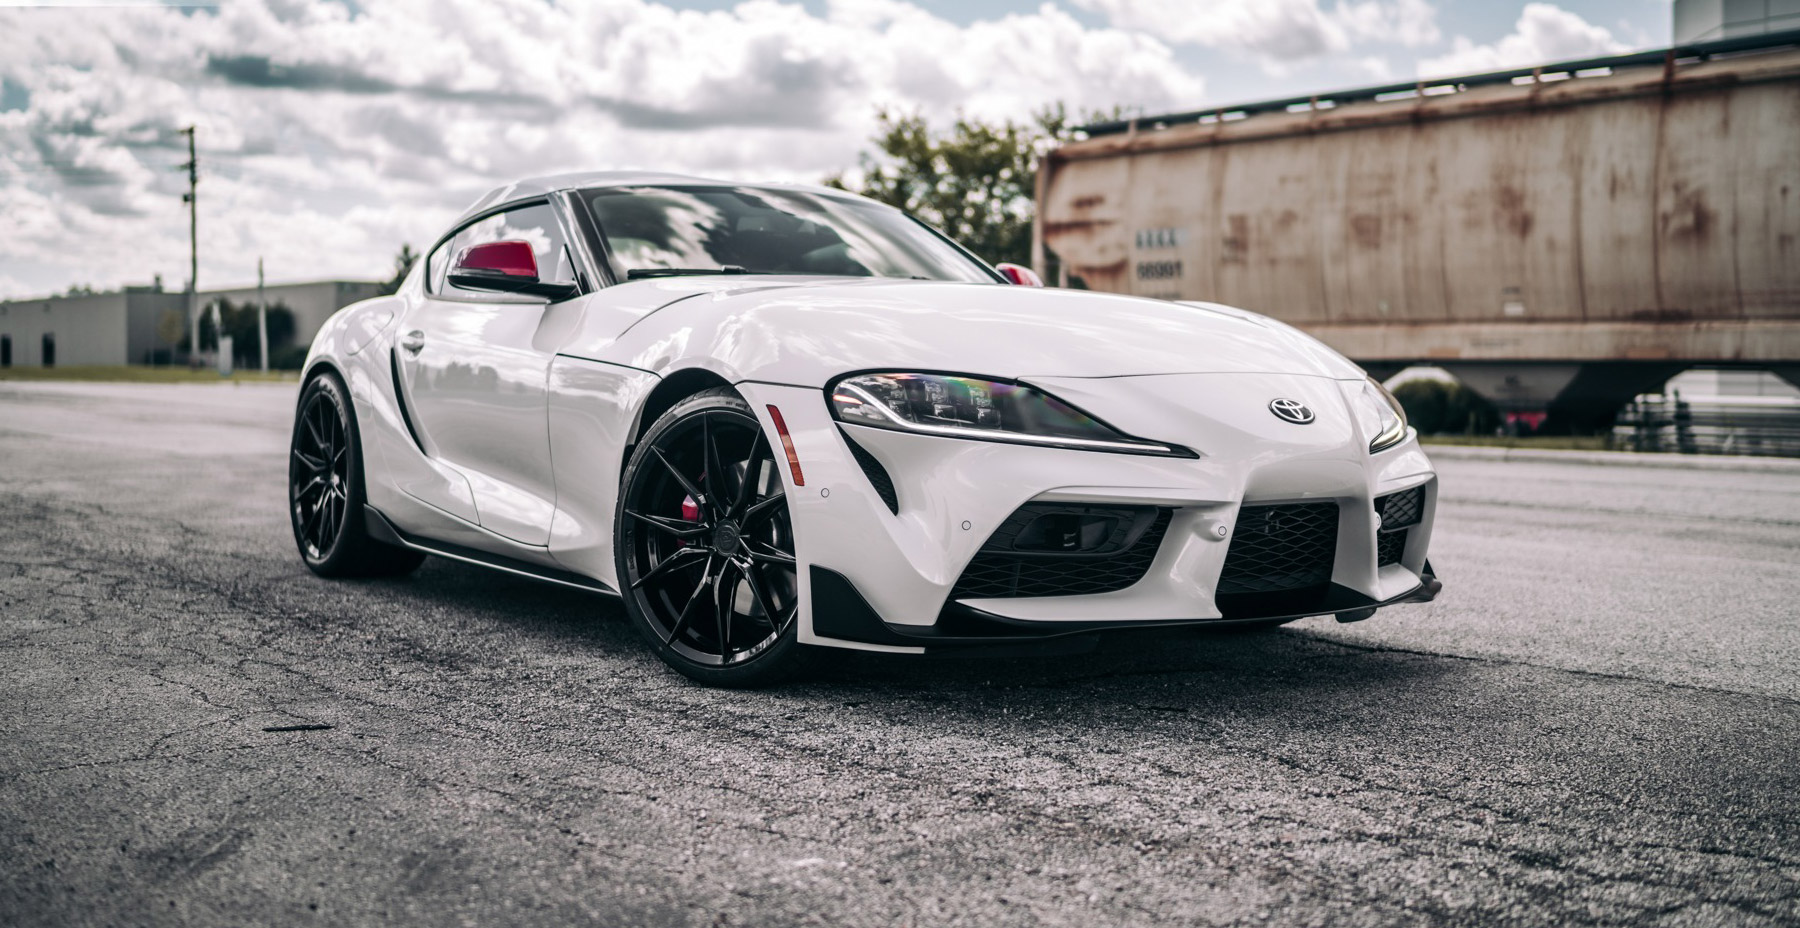 White Toyota Supra x Rohana RFX13 Wheels (Finished in Gloss Black)